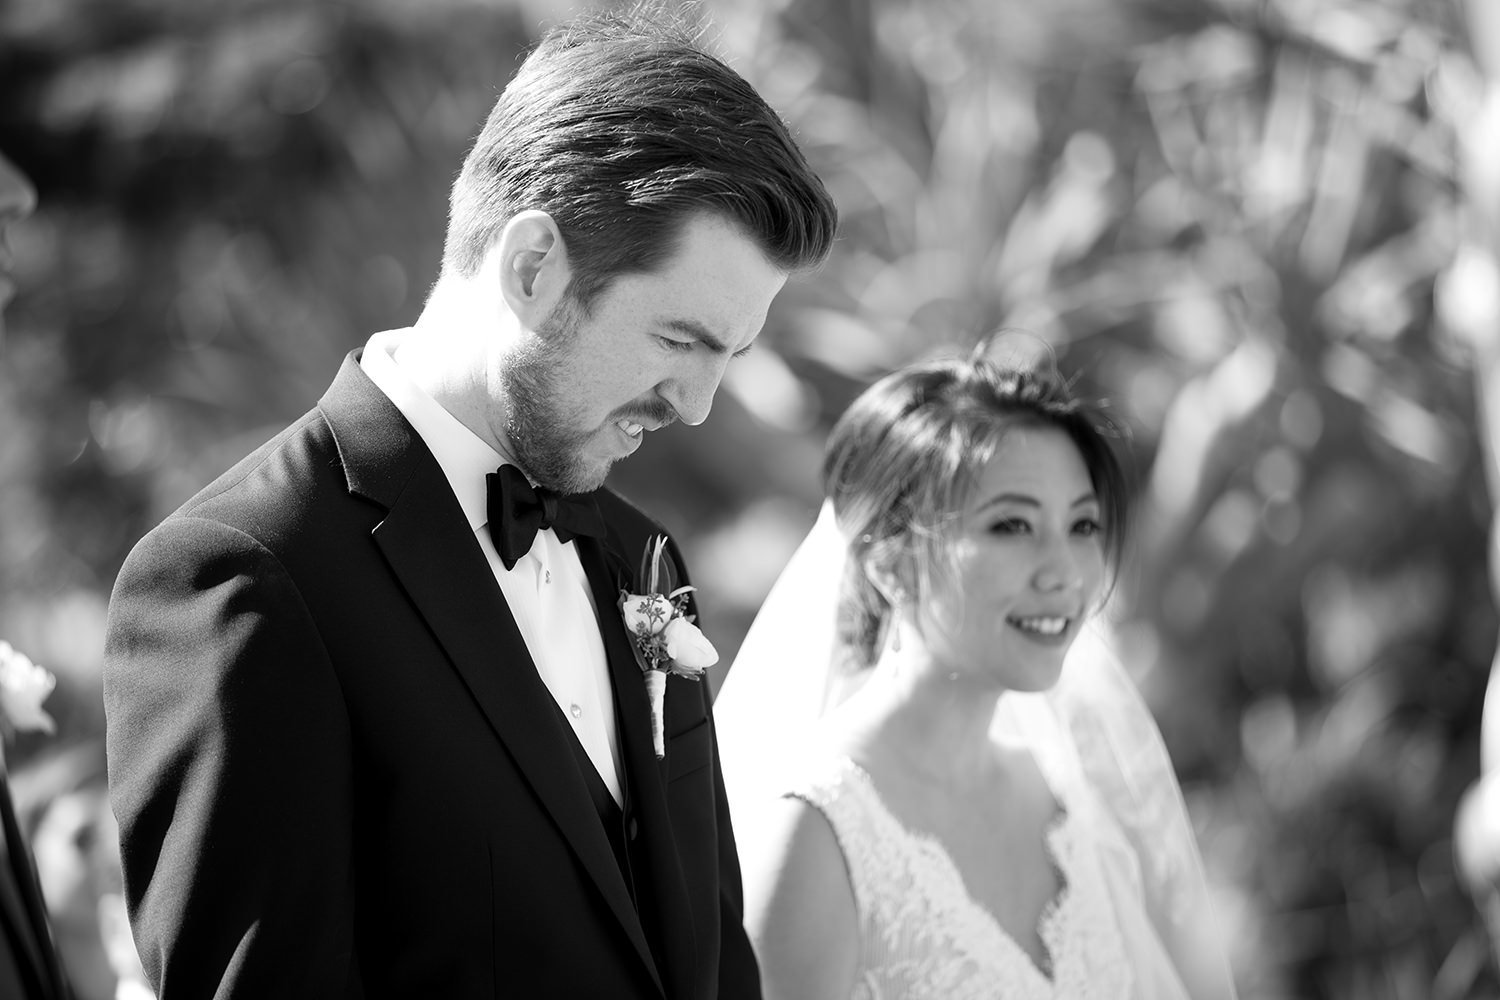 black and white image of bride and groom at ceremony